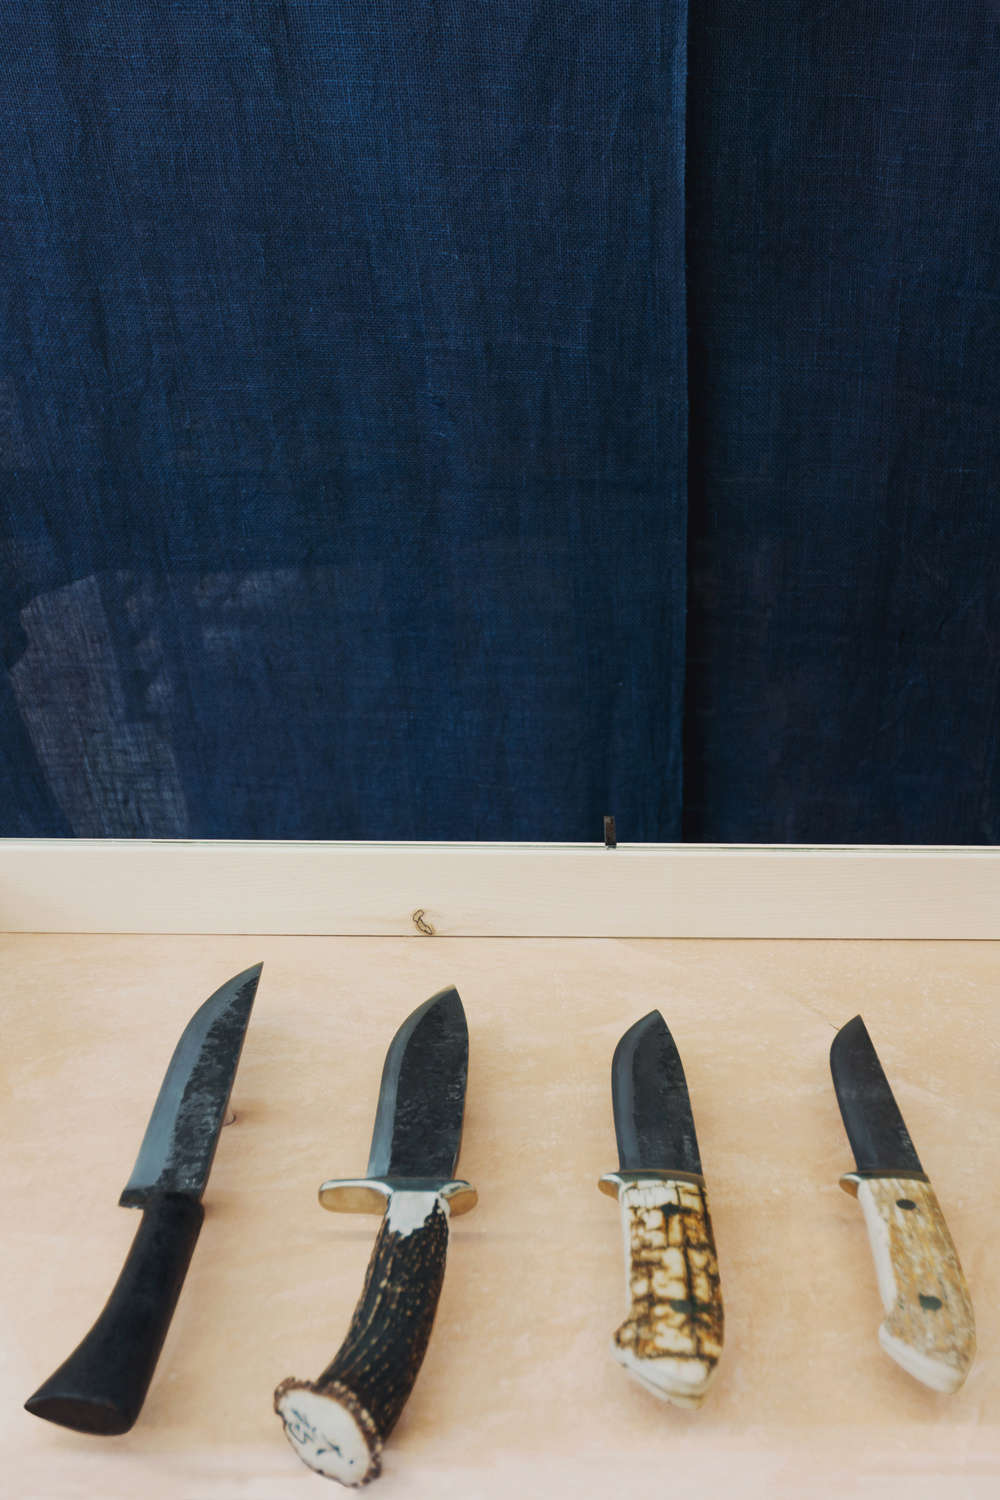 Knives in Ai and Om Knife Shop by Scott and Scott Architects